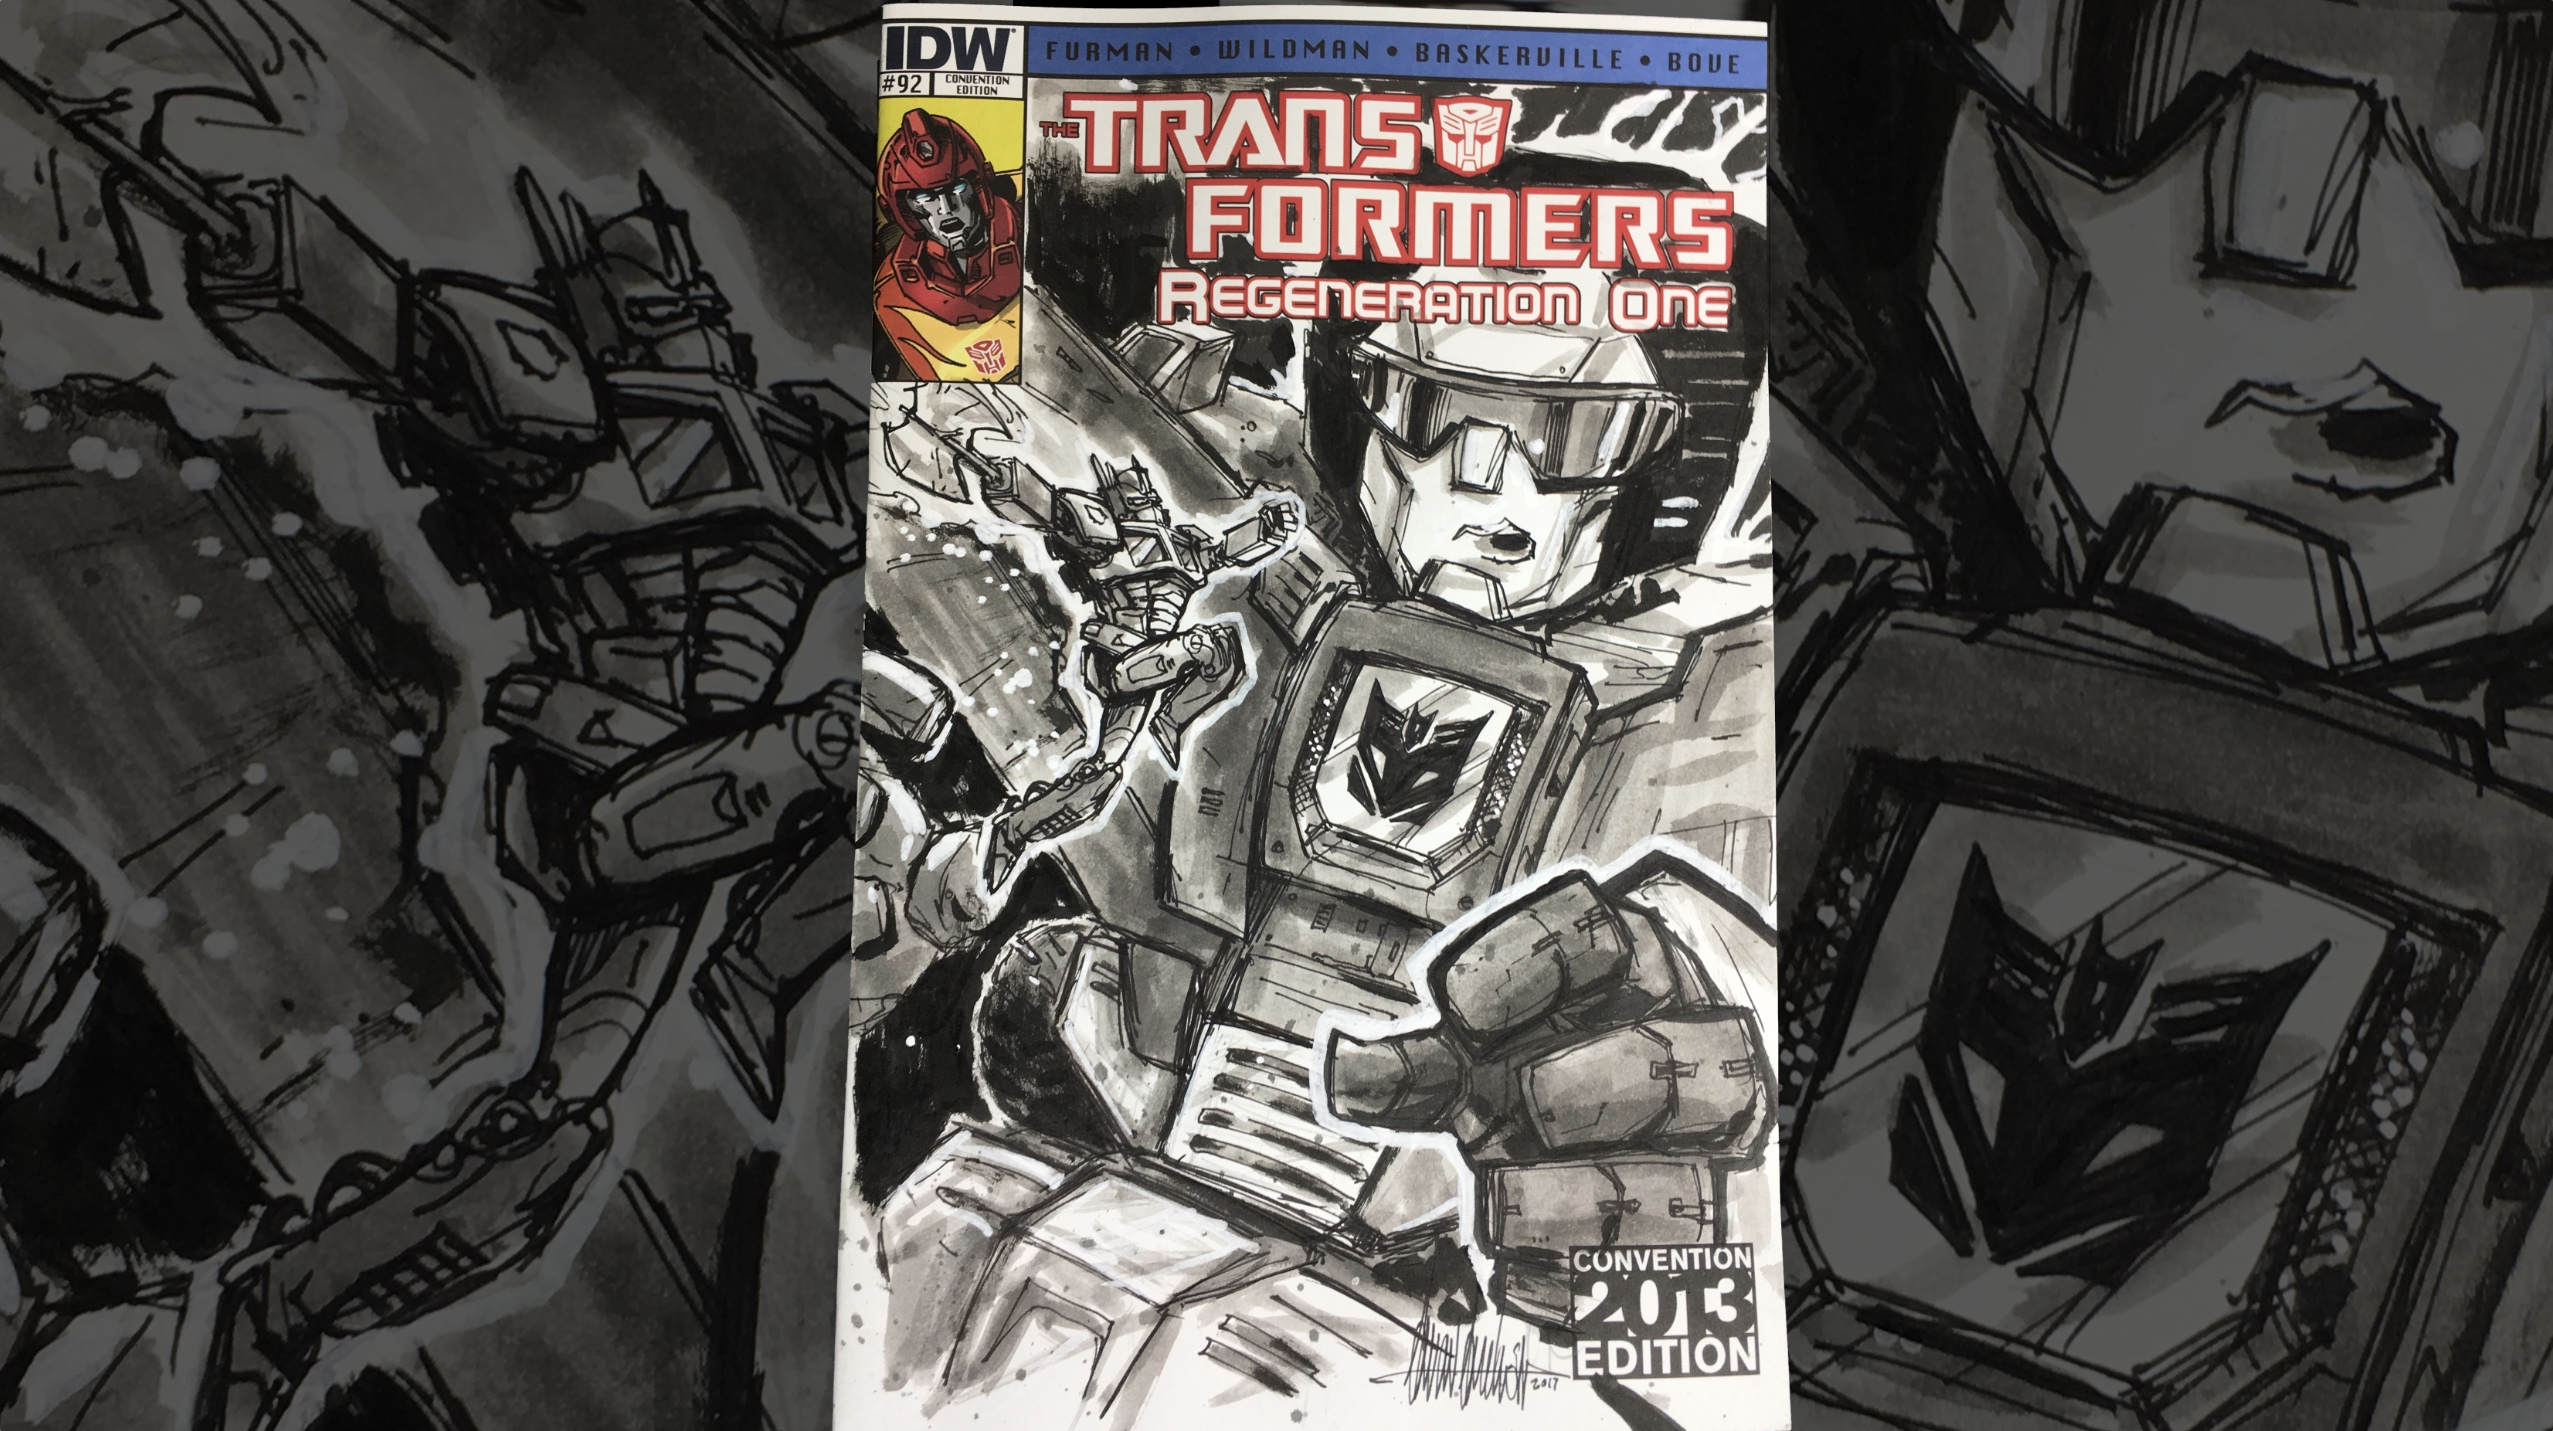 Sketch Covers With Aaron Archer | Transformers Devastation Homage